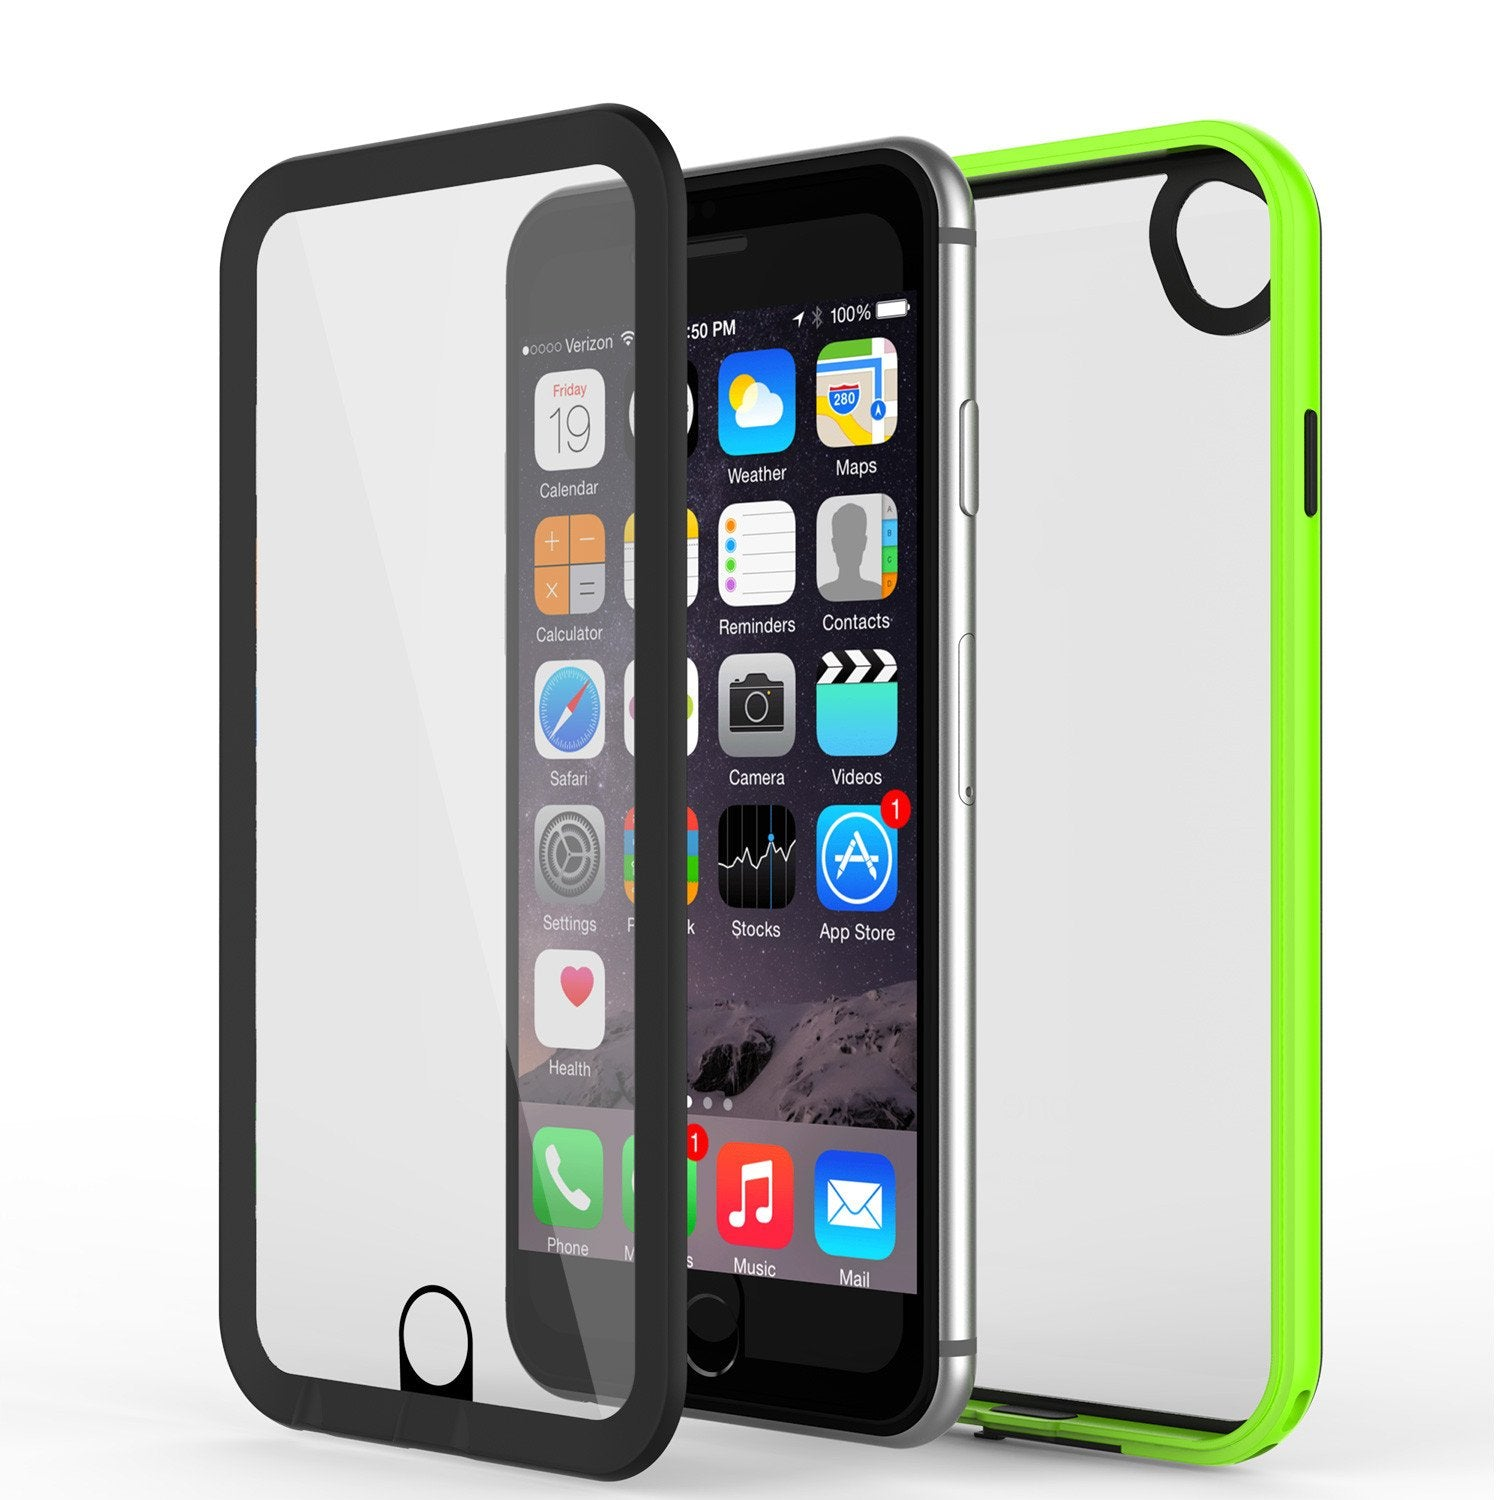 Apple iPhone 7 Waterproof Case, PUNKcase CRYSTAL 2.0 Light Green  W/ Attached Screen Protector  | Warranty